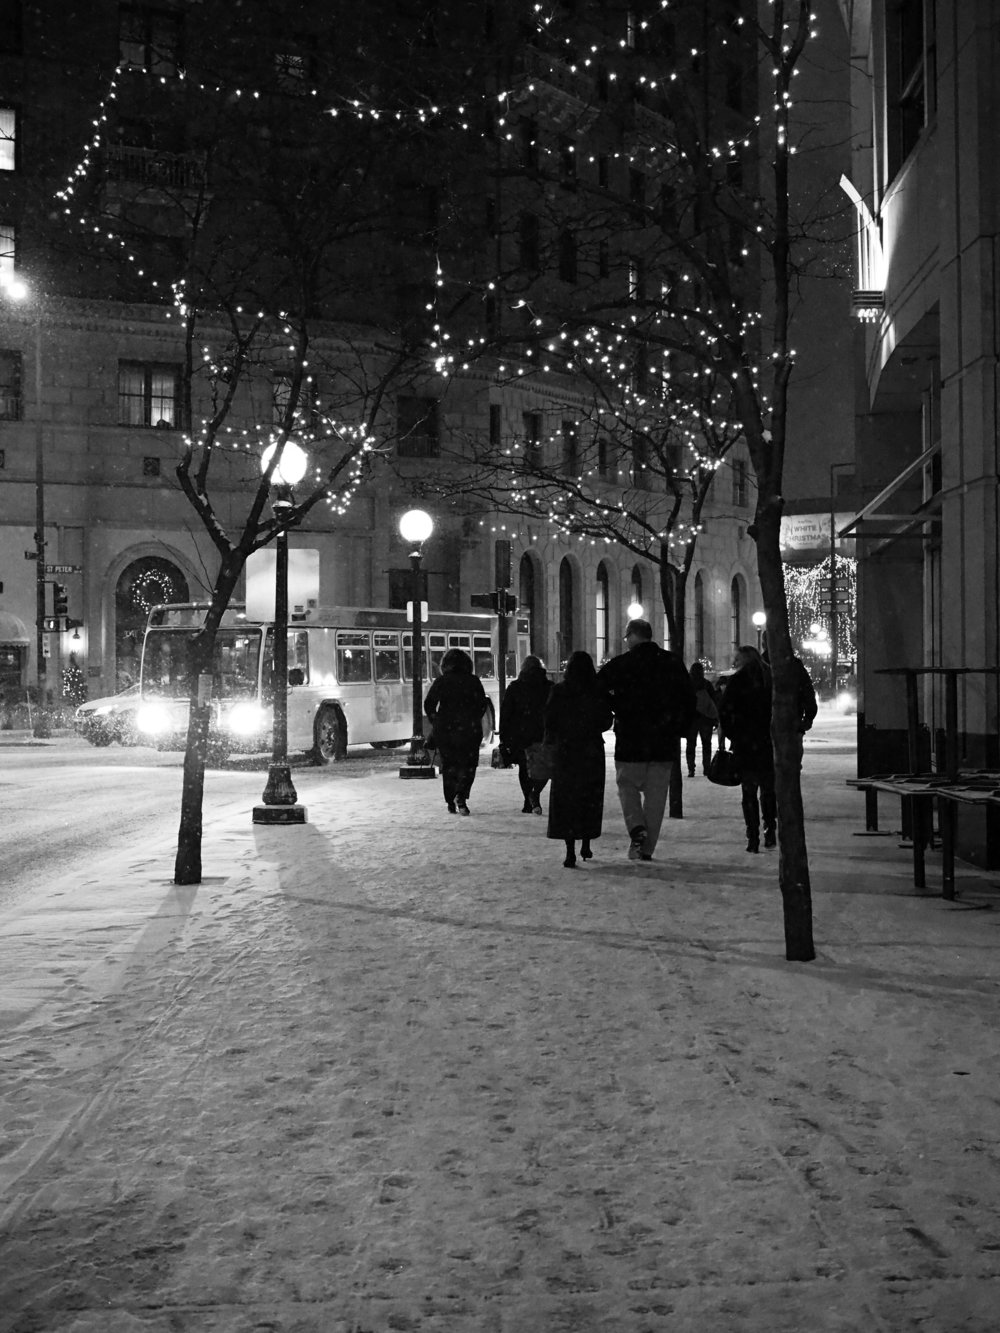 Downtown Saint Paul in December